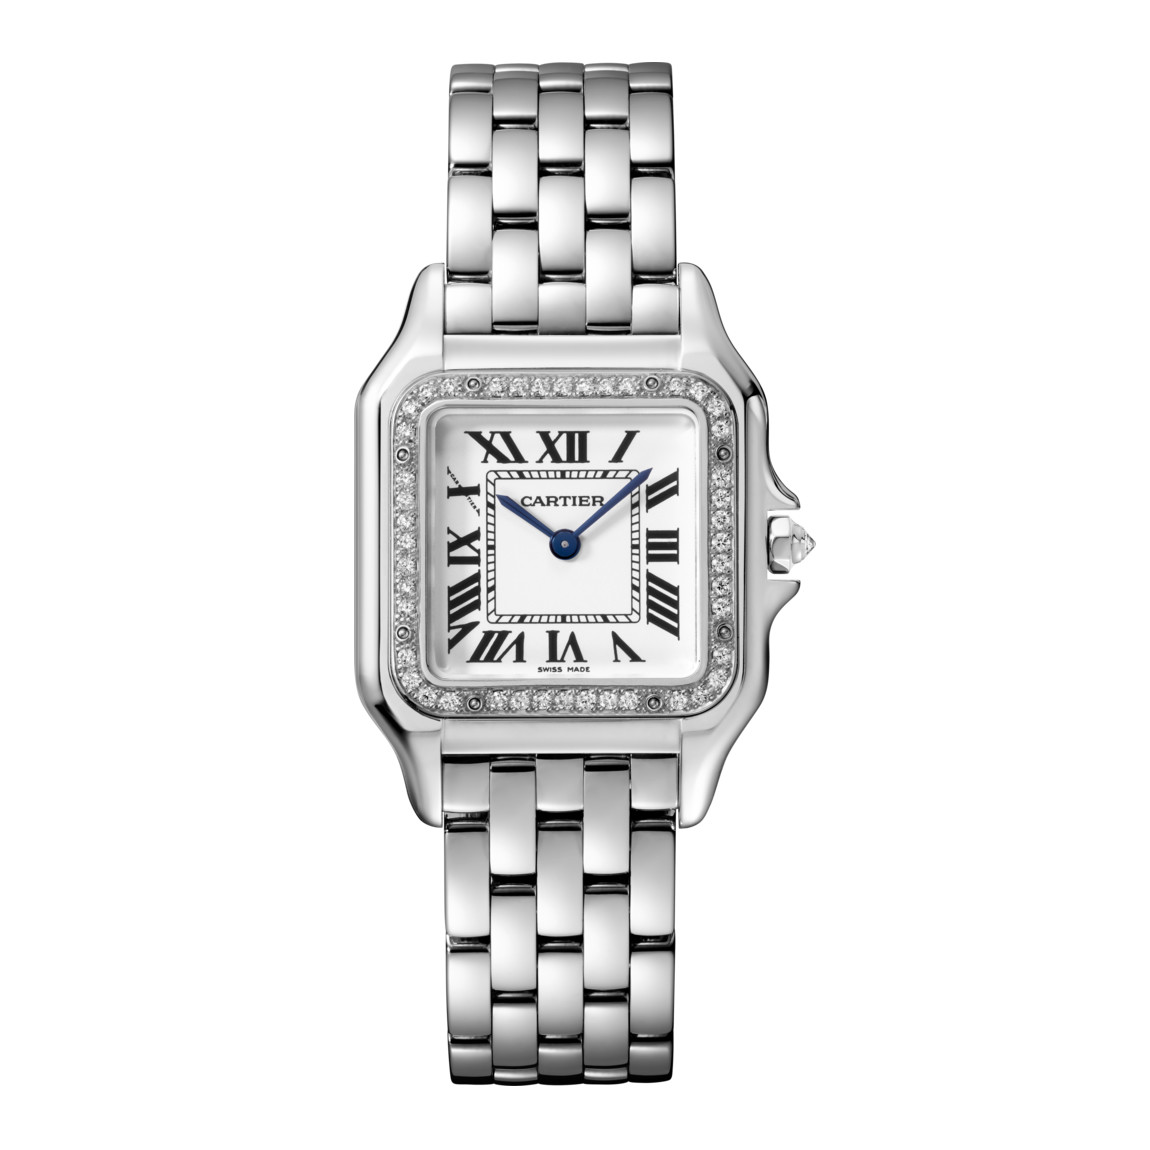 Panthère Medium White Gold & Diamonds (WJPN0007)